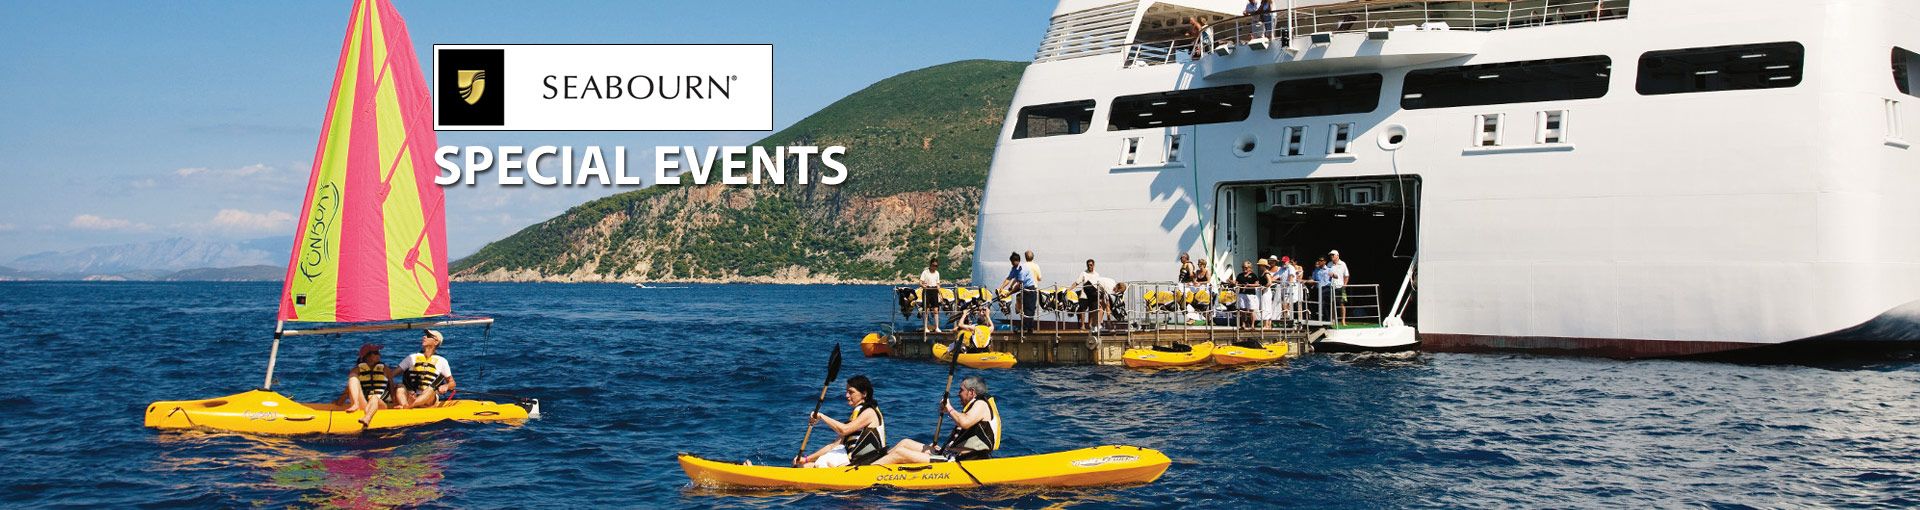 Seabourn Cruise Line Special Events